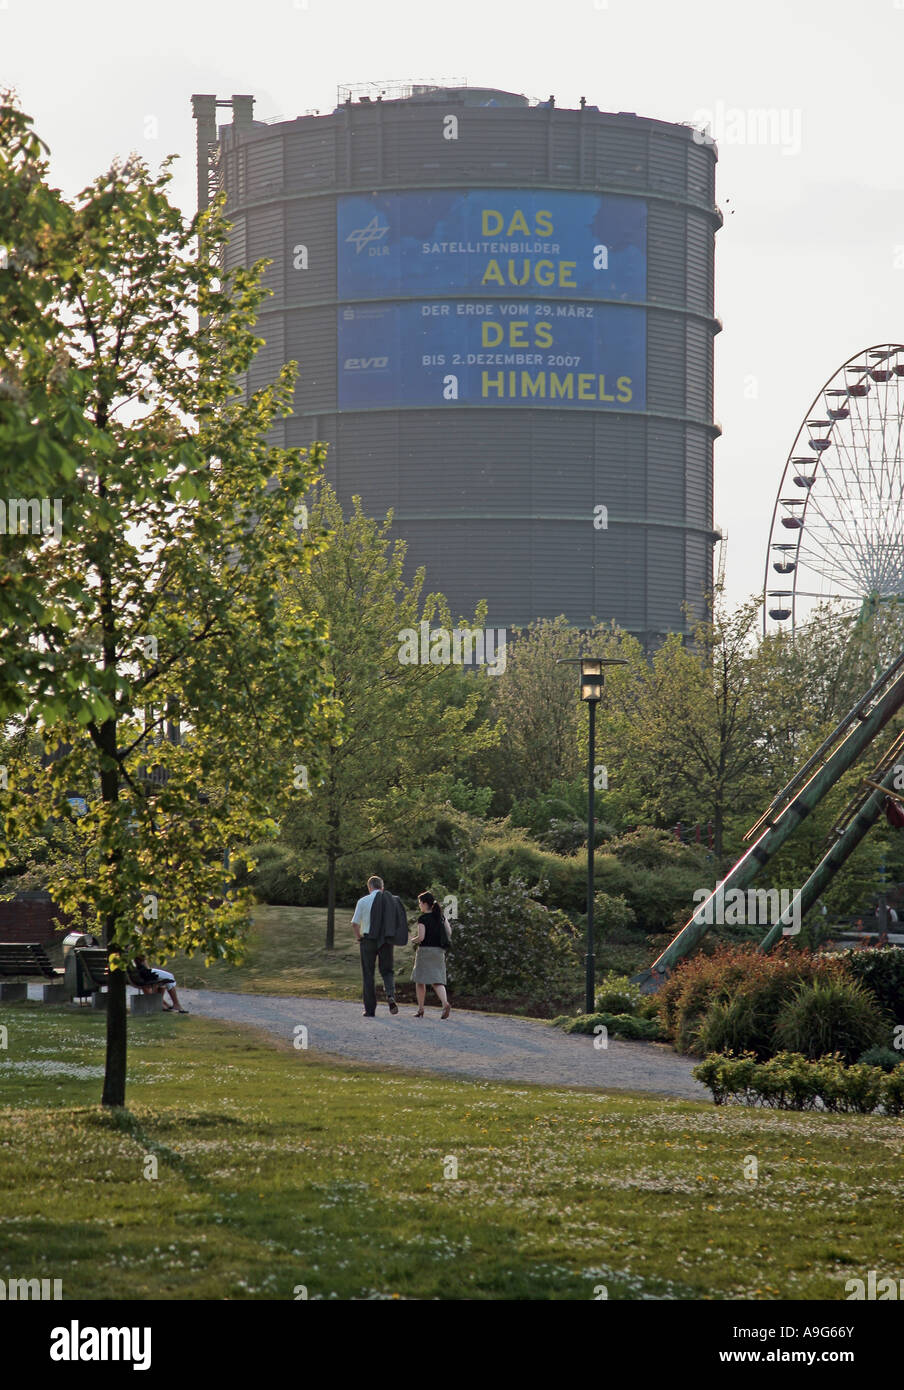 view from the park of the CentrO to the Gasometer, Germany, North Rhine-Westphalia, Ruhr Area, Oberhausen Stock Photo